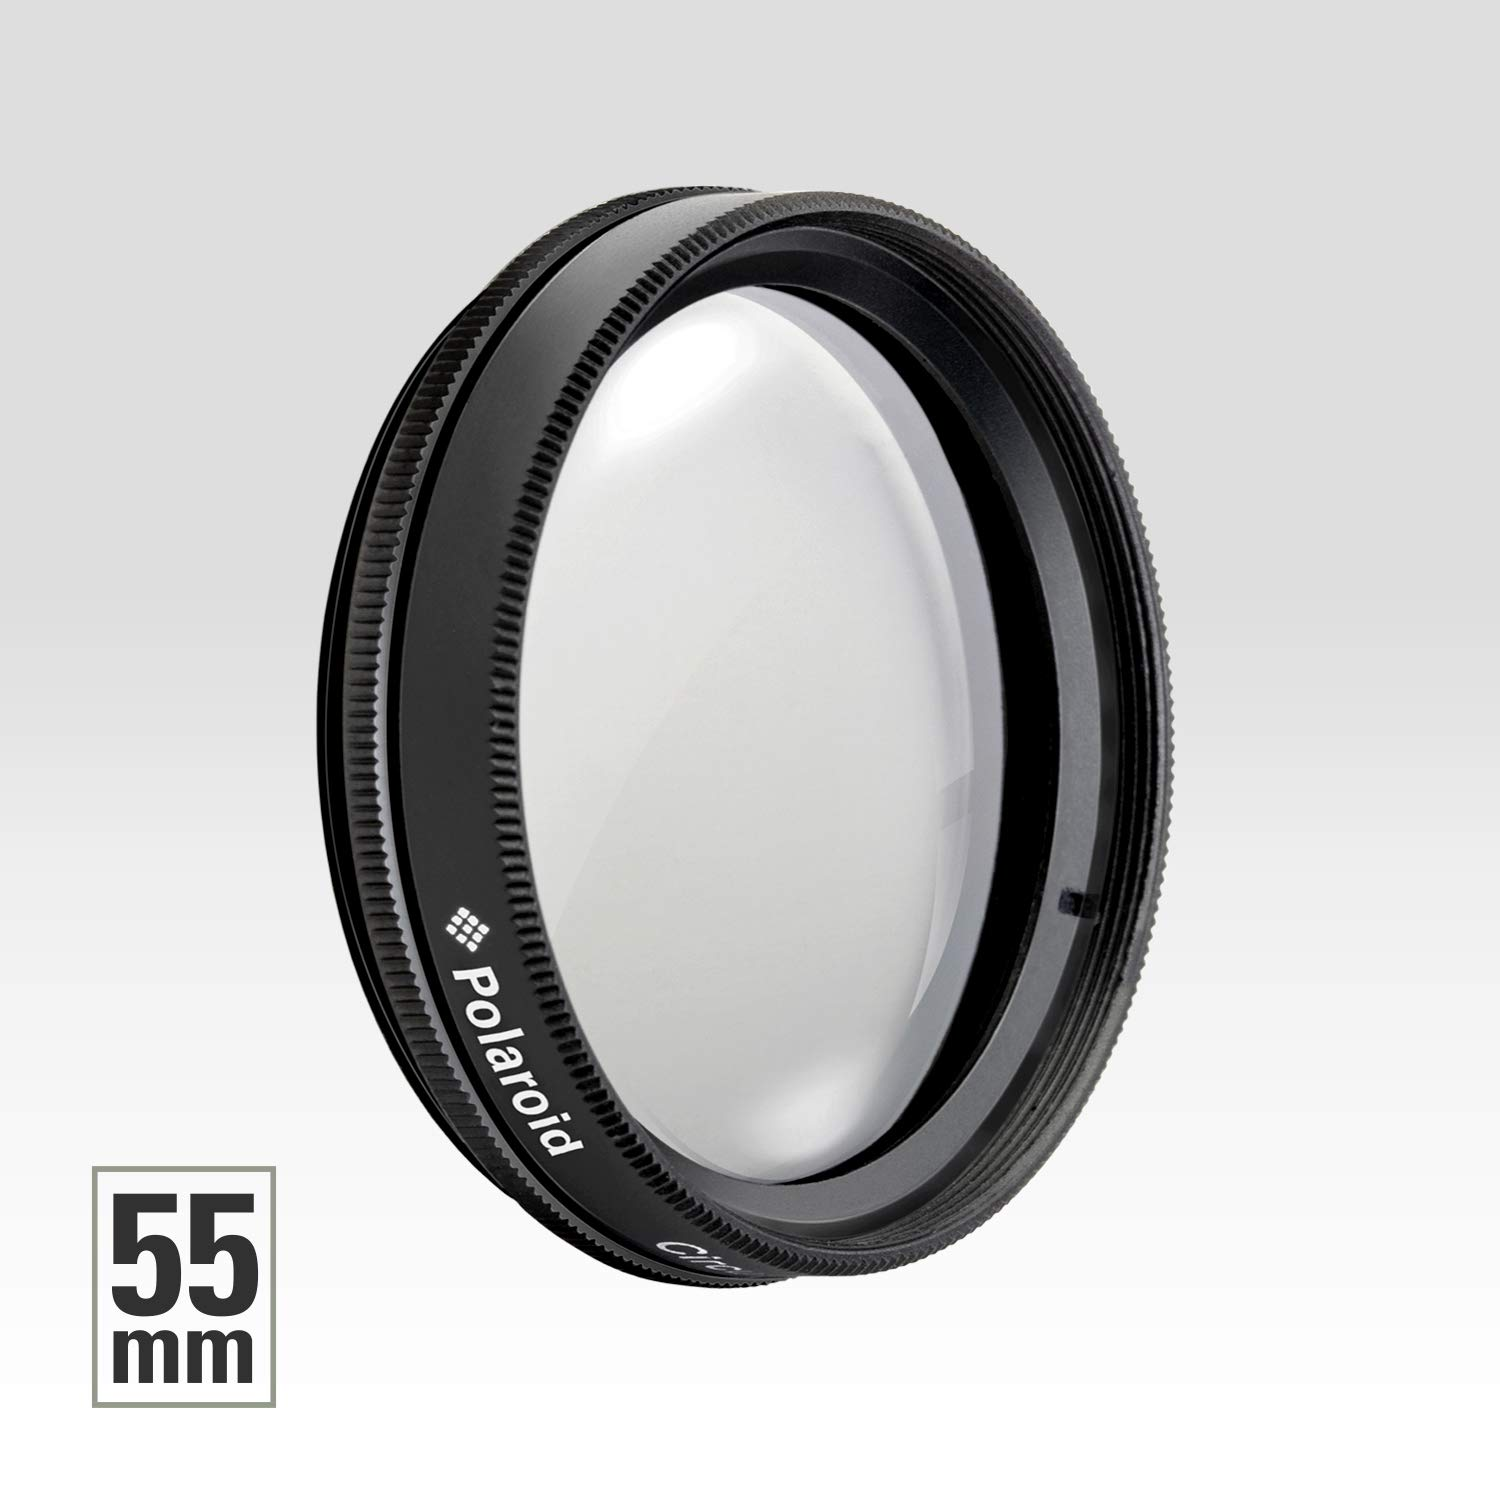 8d635cc417 62mm Polaroid PLFILCPL62 color negro C&A marketing UK LTD Filtro  polarizador circular para cá mara